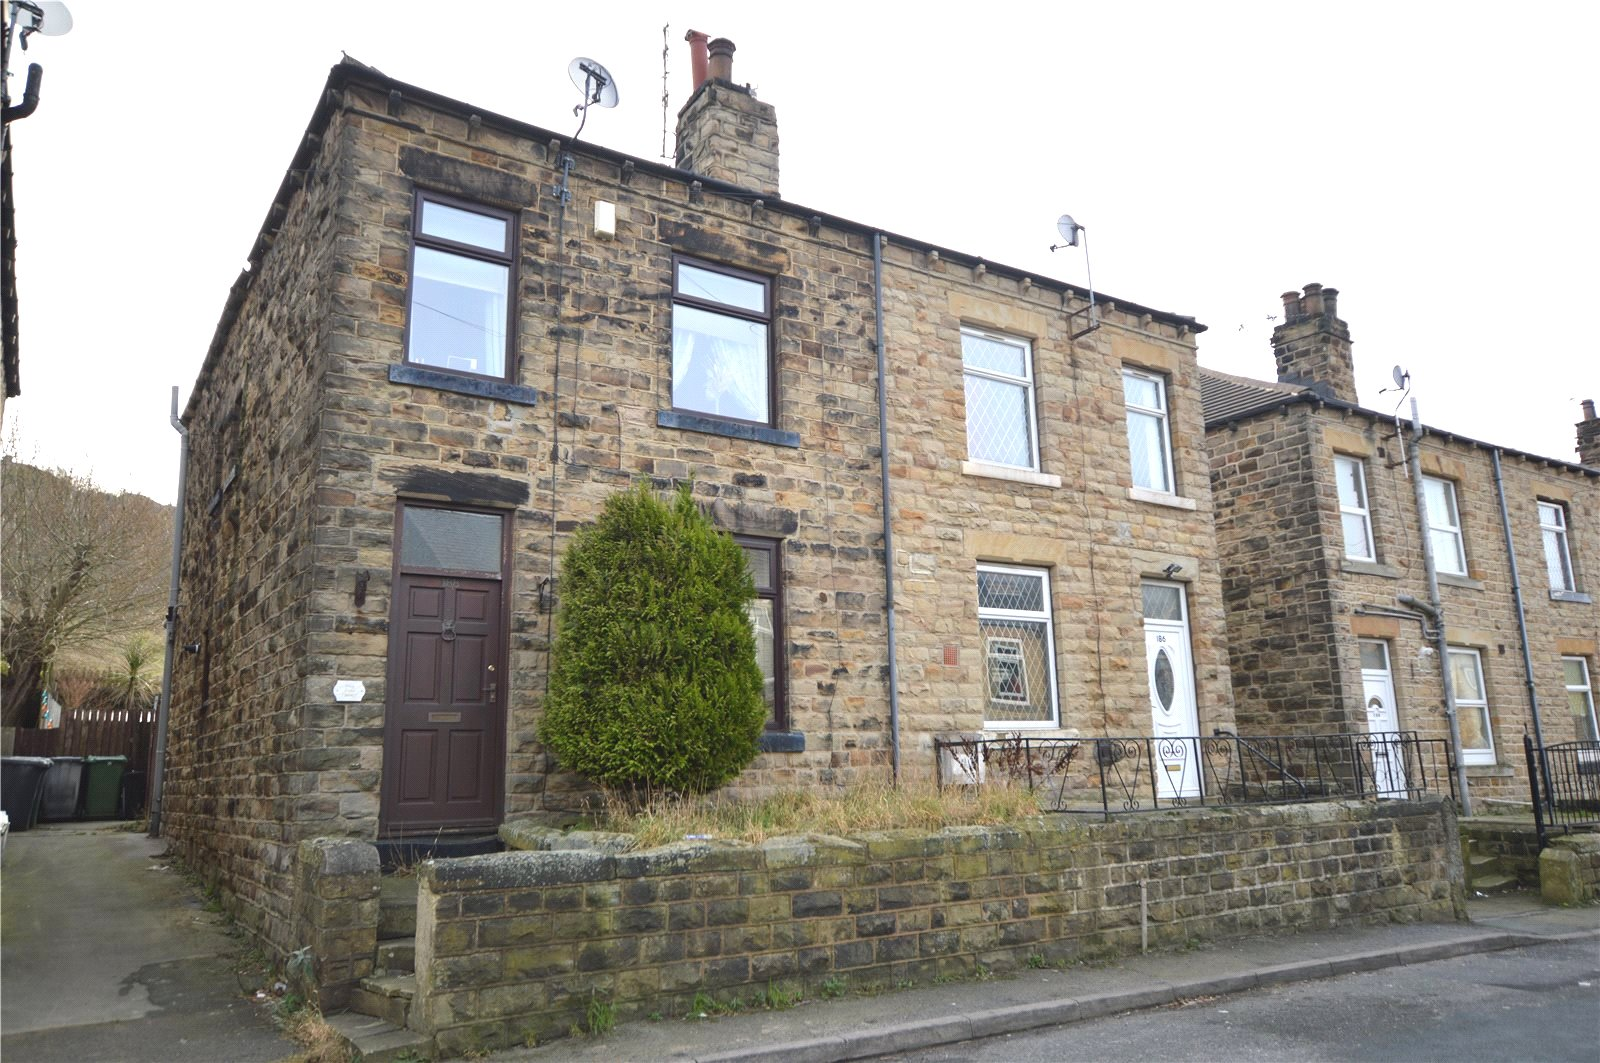 Property for sale in Batley, exterior end terrace home